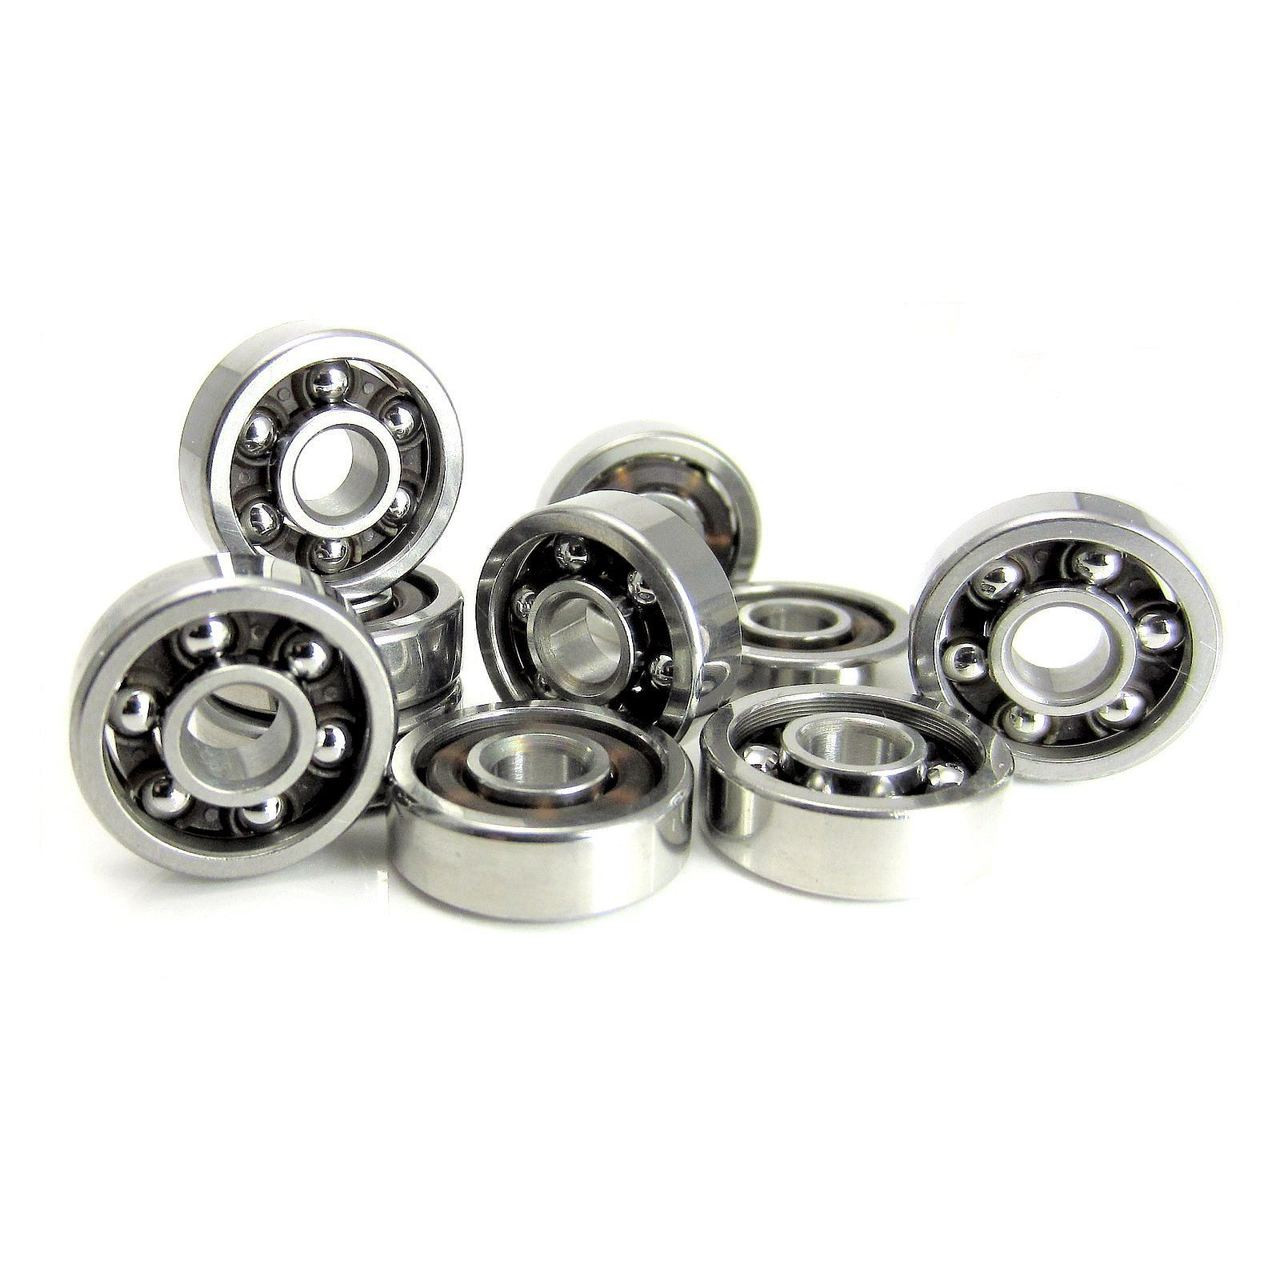 5x16x5mm 625  Open A5 Precision Ball Bearings (10) by TRB RC